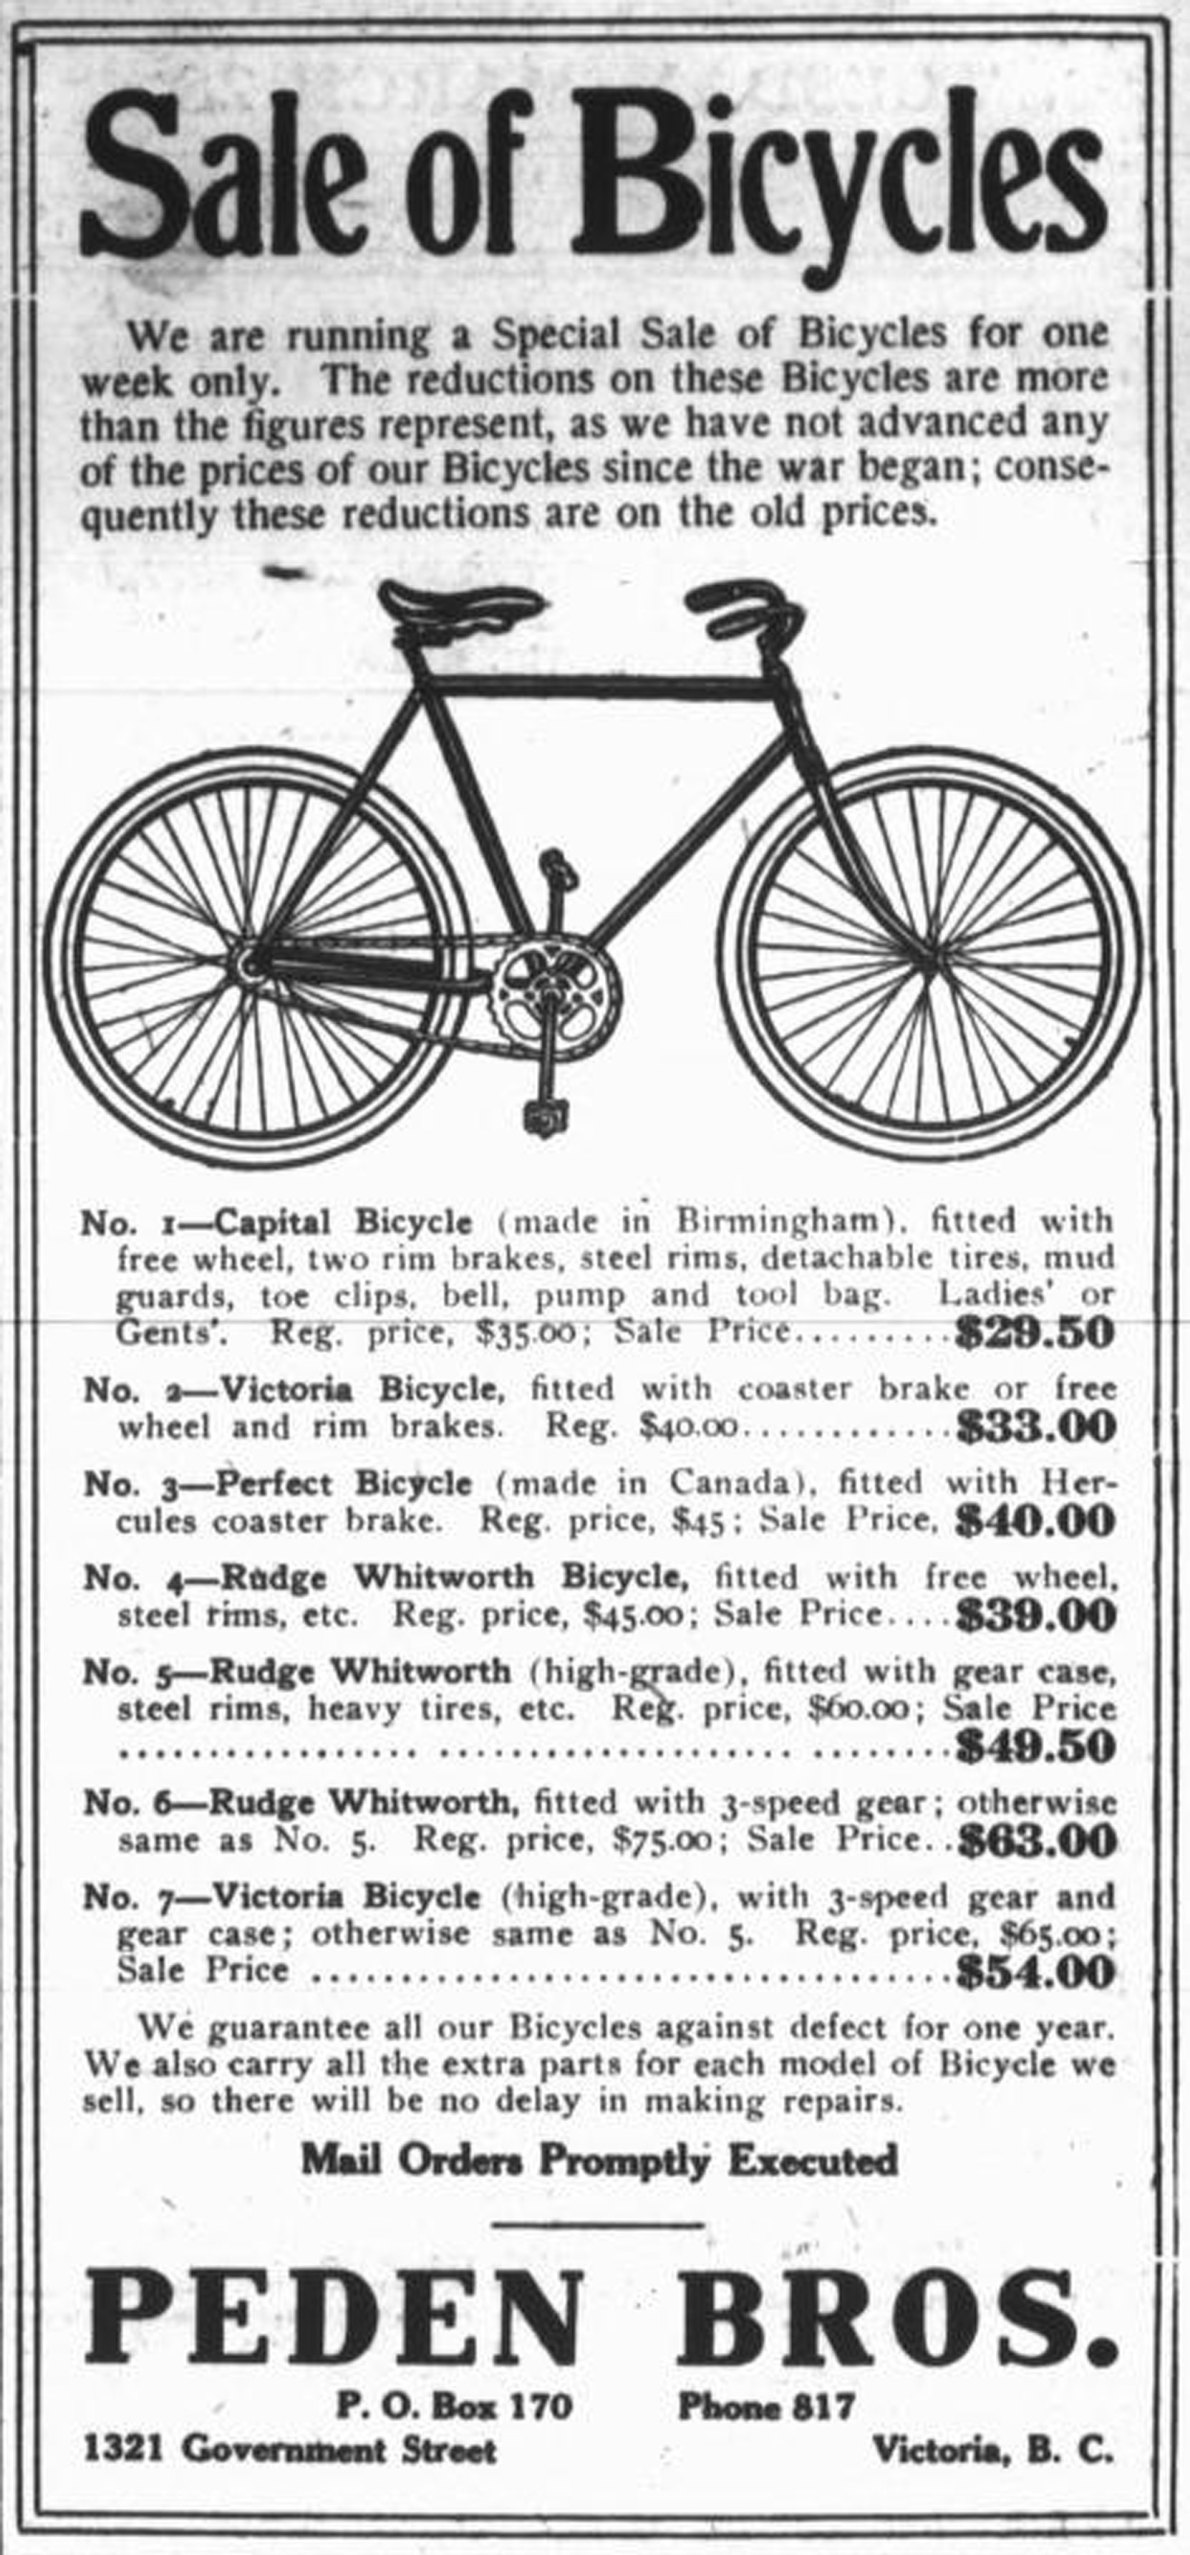 1916 advertisement for bicycles at Peden Brothers, 1321 Government Street (Victoria Online Sightseeing Tours collection)